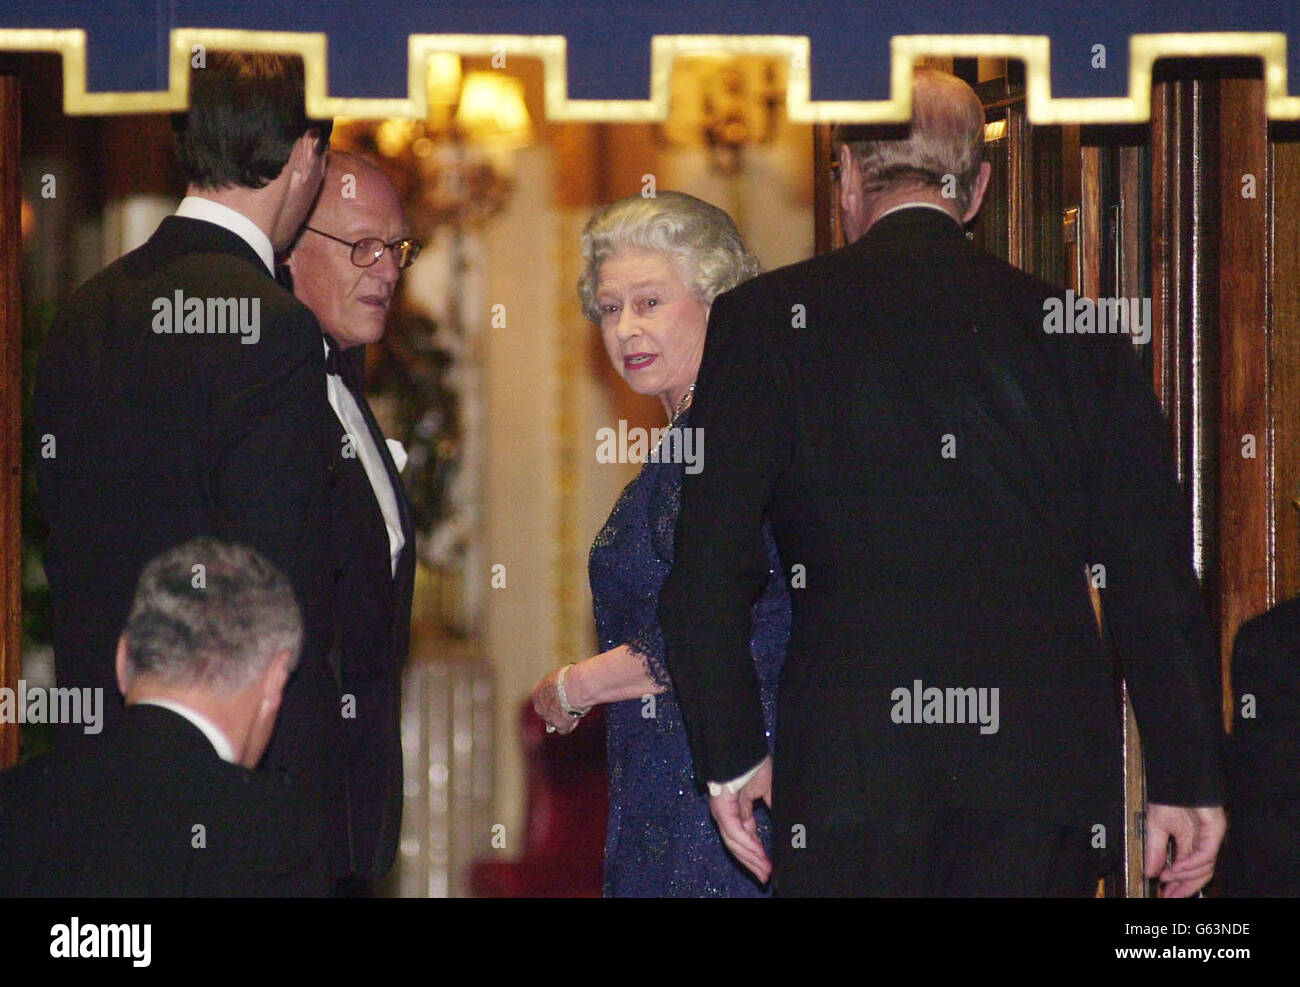 Royalty - Queen Elizabeth II Golden Jubilee - Stock Image